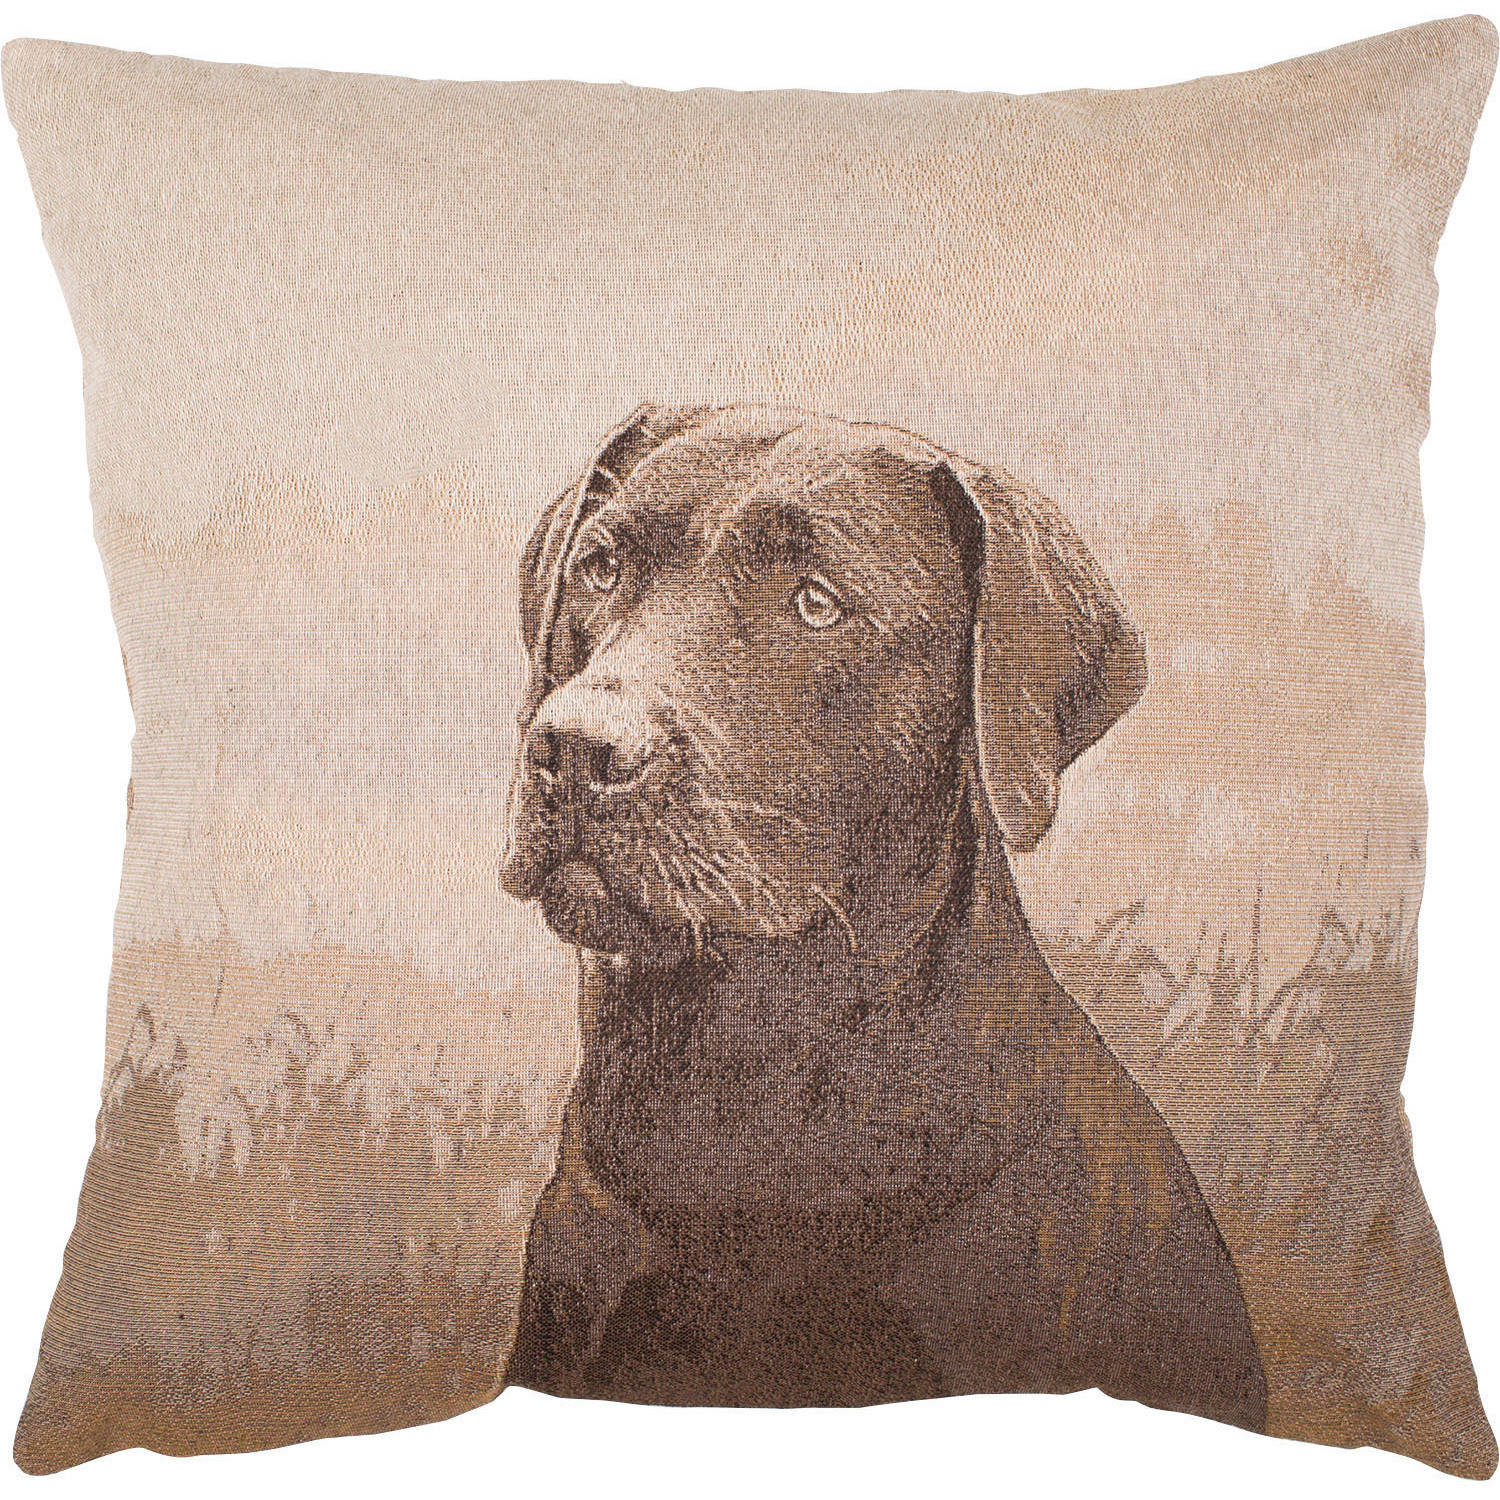 Better Homes and Gardens Labrador Retriever Decorative Pillow